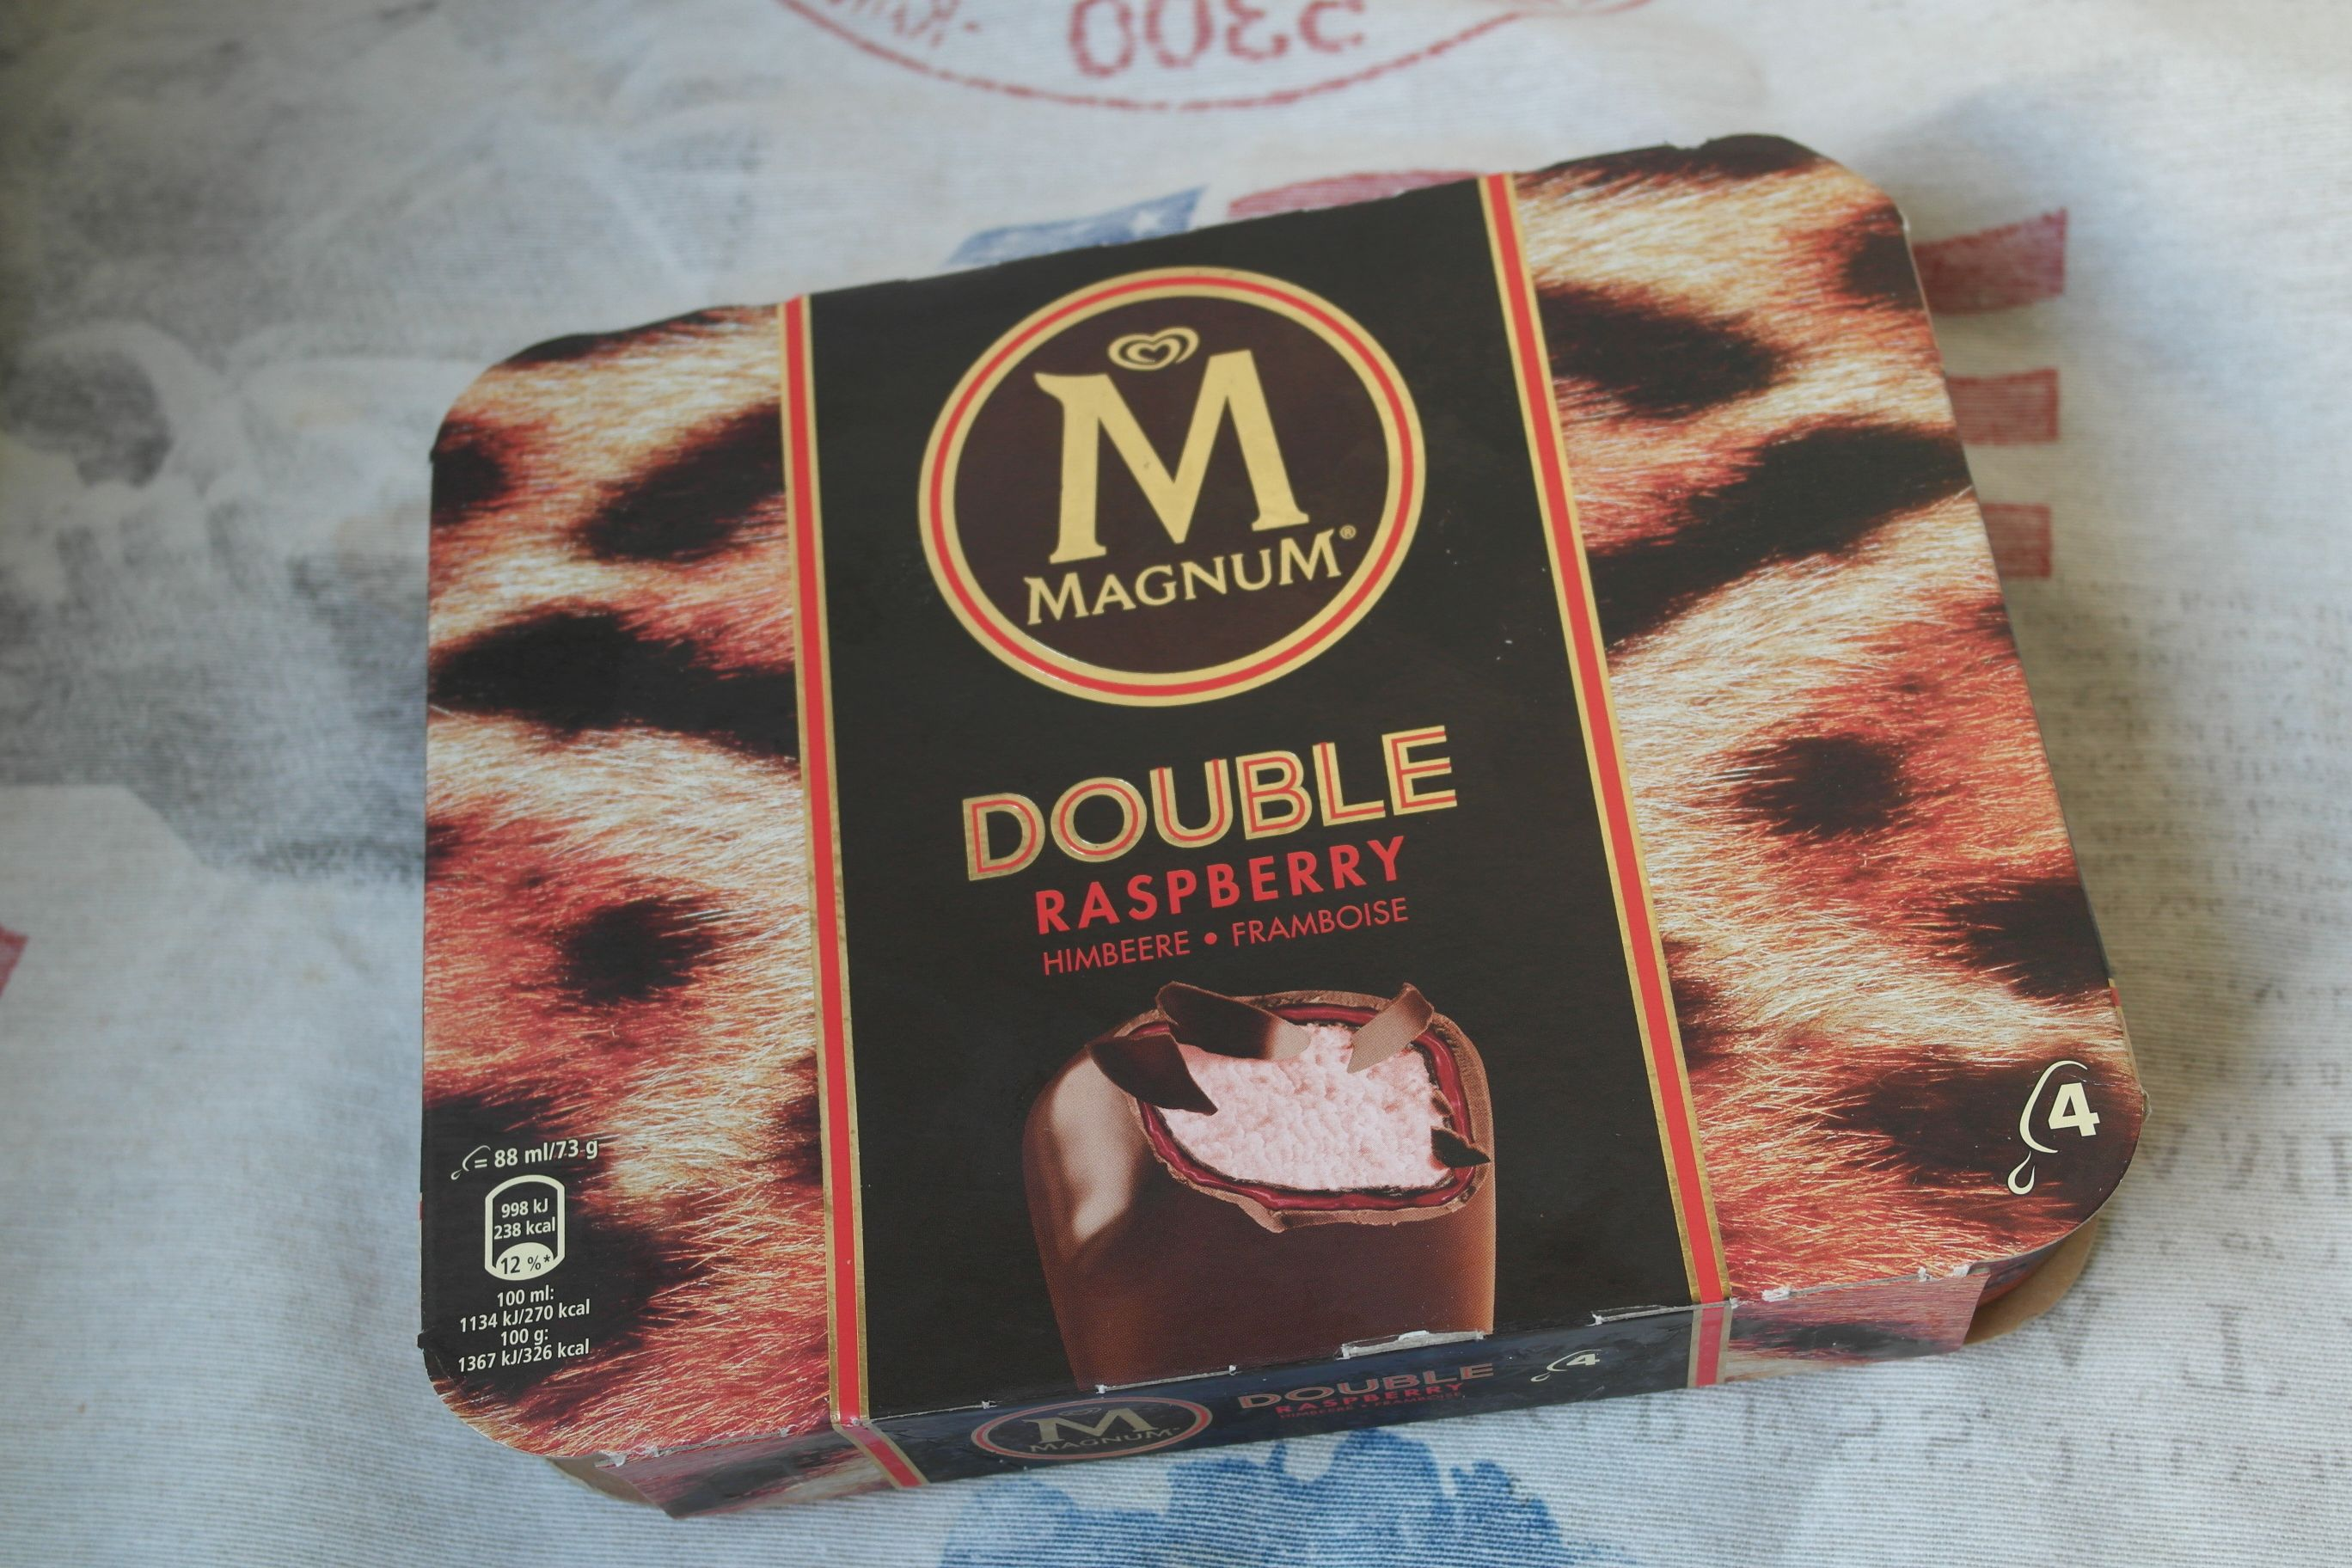 Magnum Double Himbeere